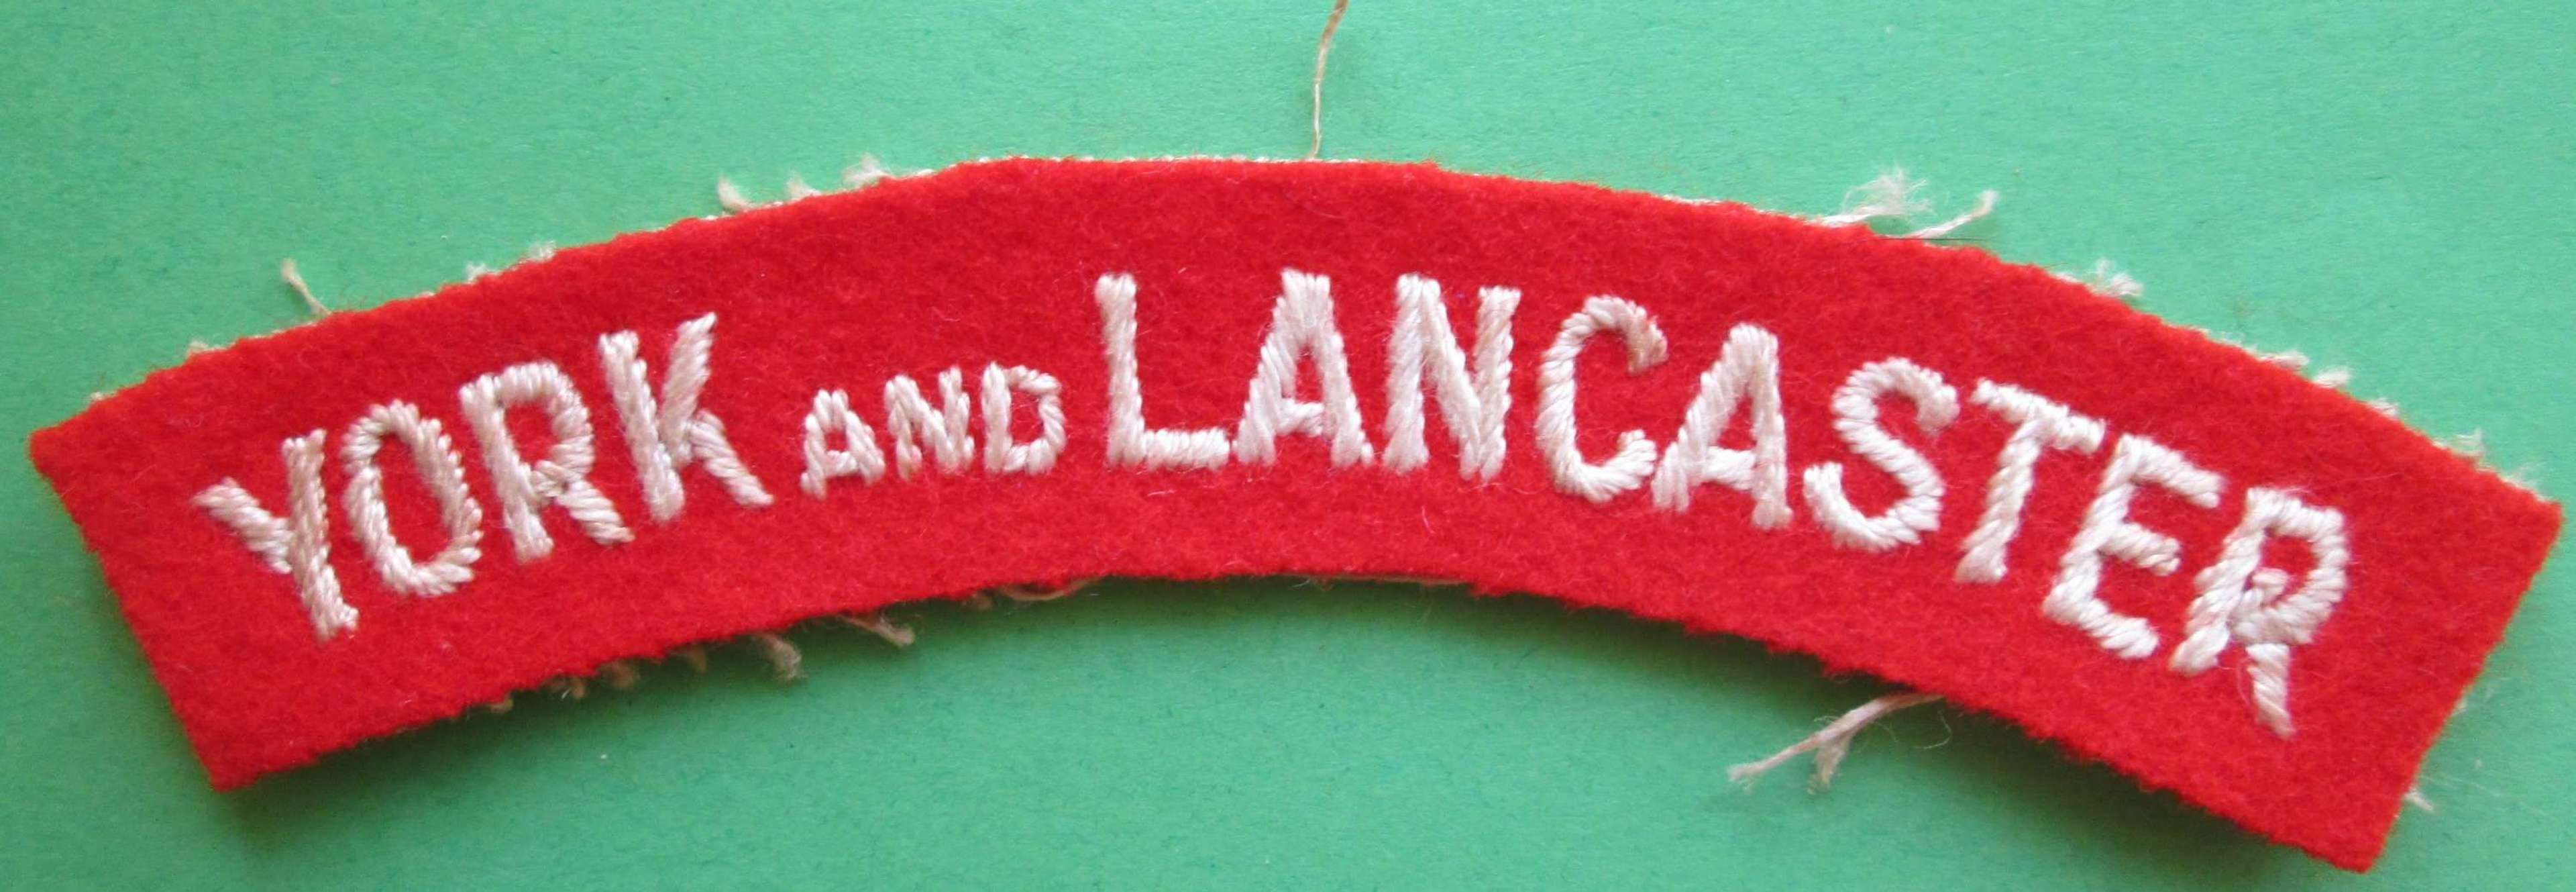 WWII PERIOD YORK AND LANCASTER SHOULDER TITLE